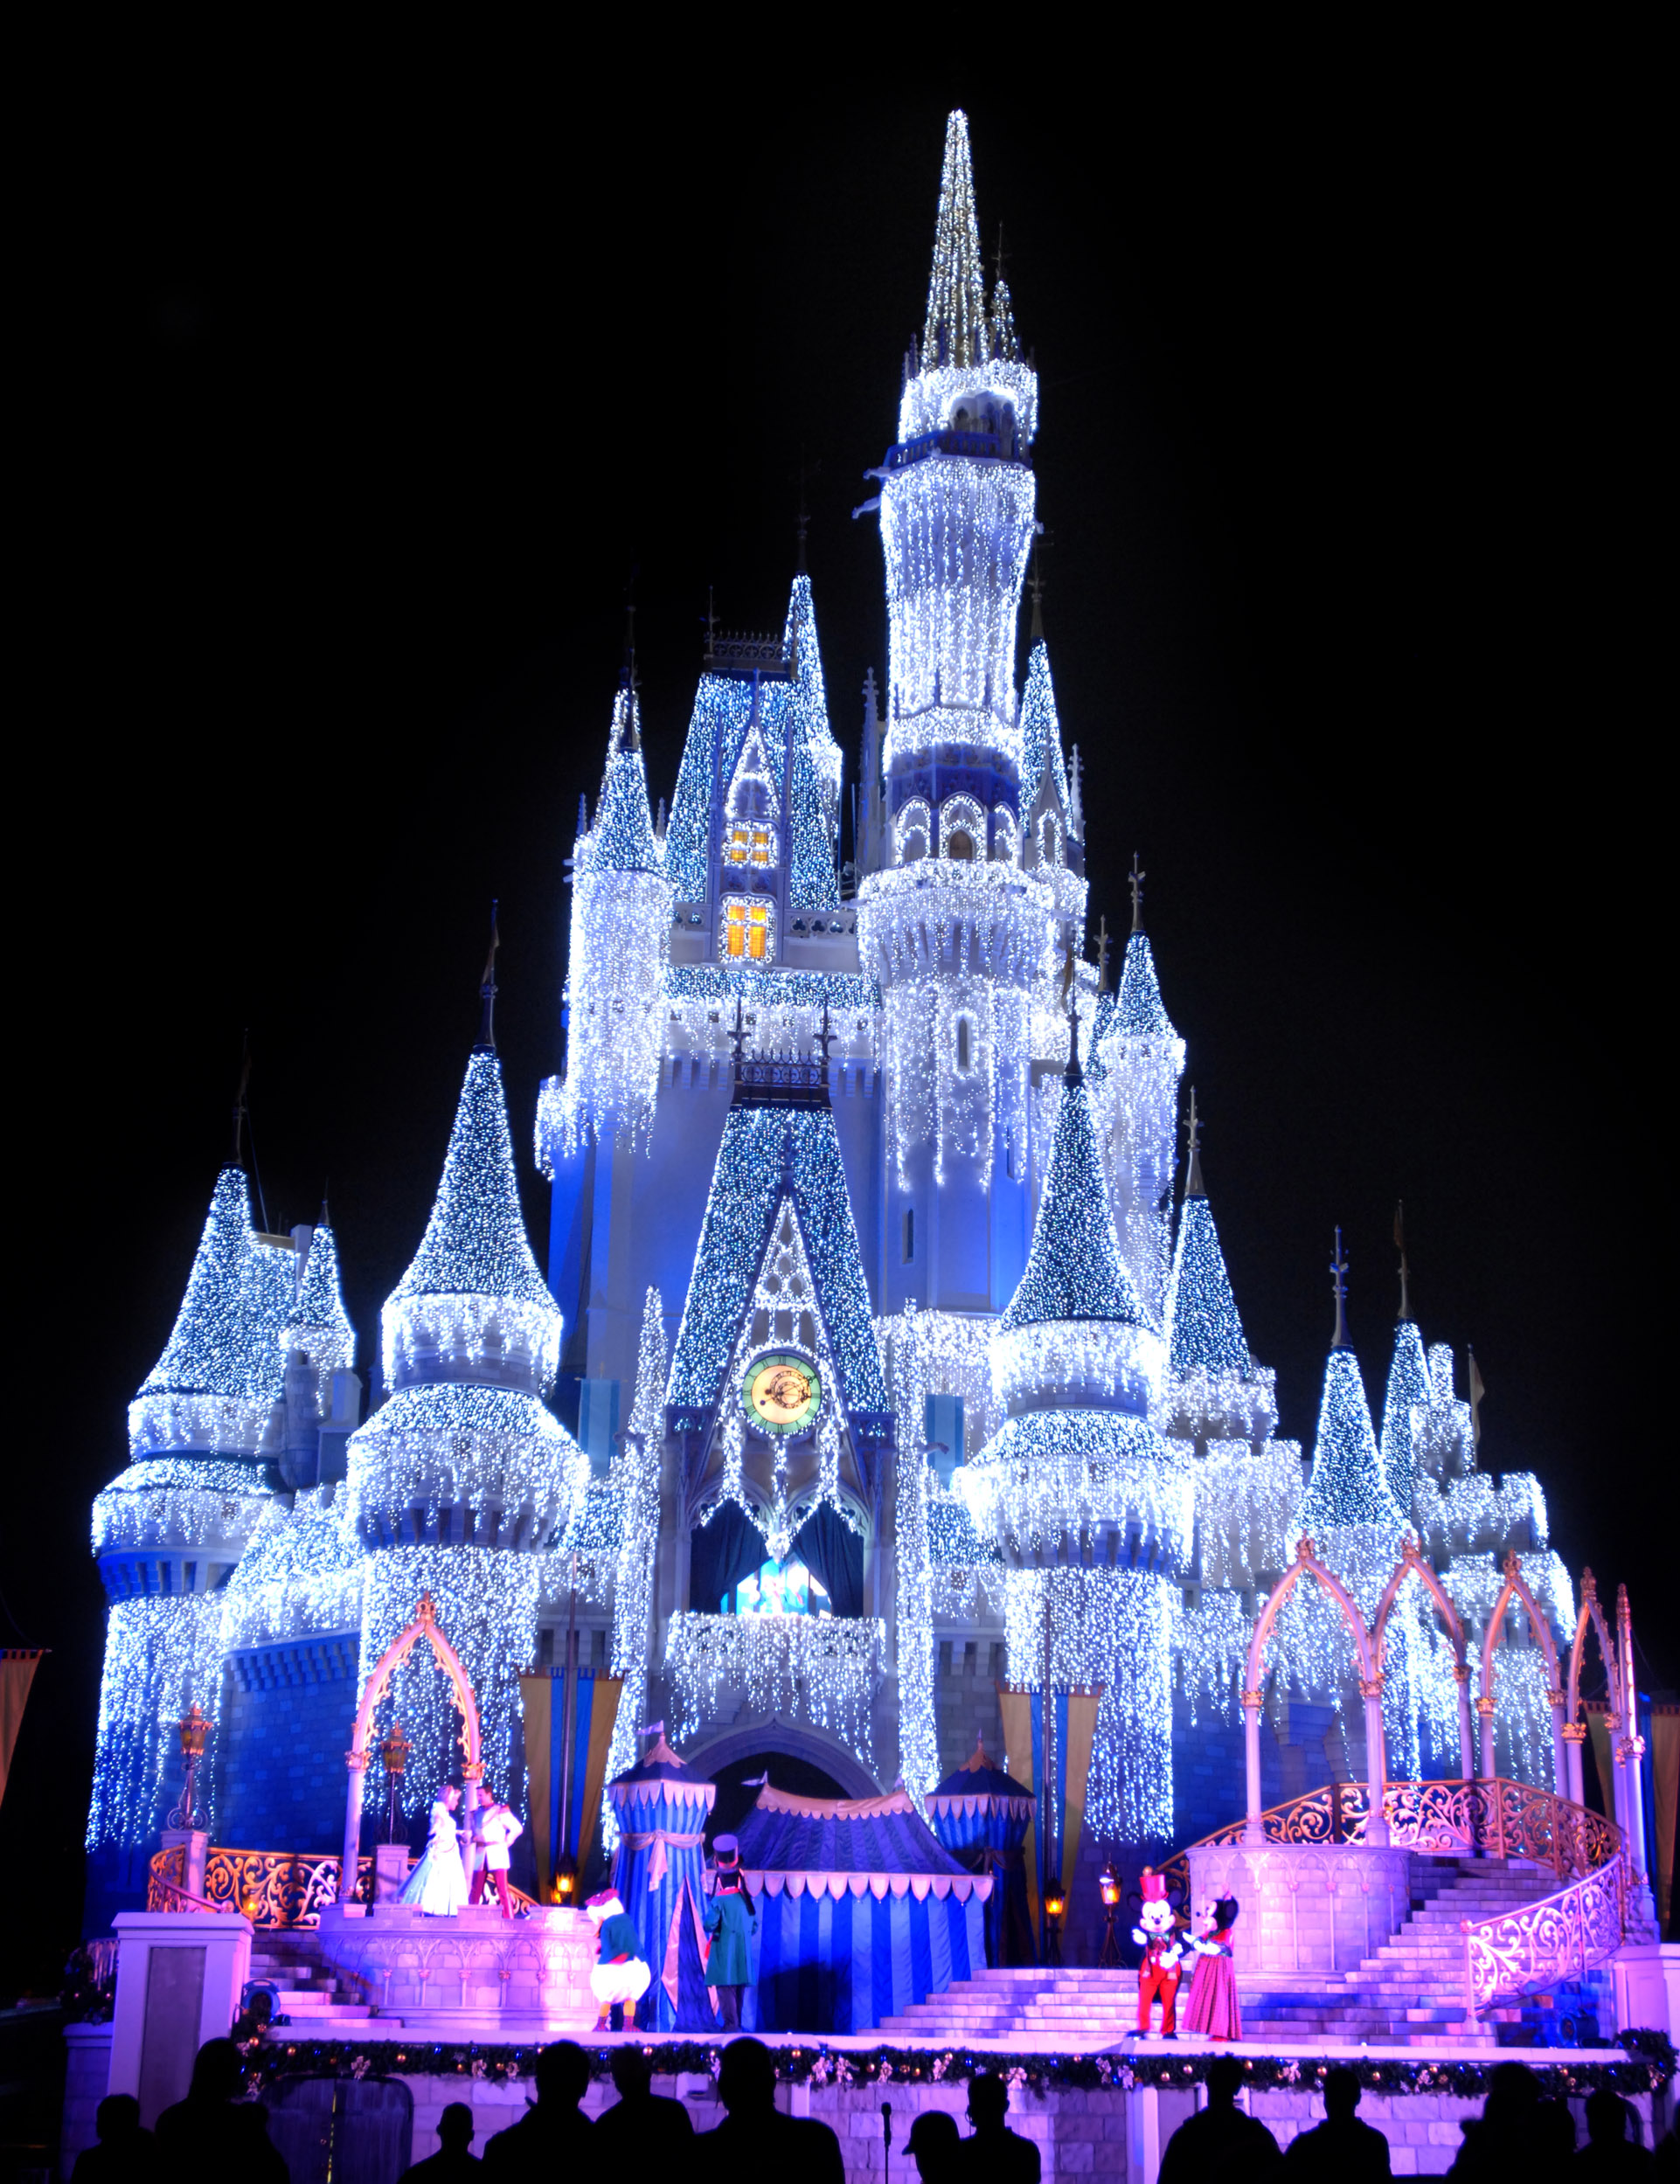 Walt disney world december 2016 preview touringplans blog dreamlights publicscrutiny Images